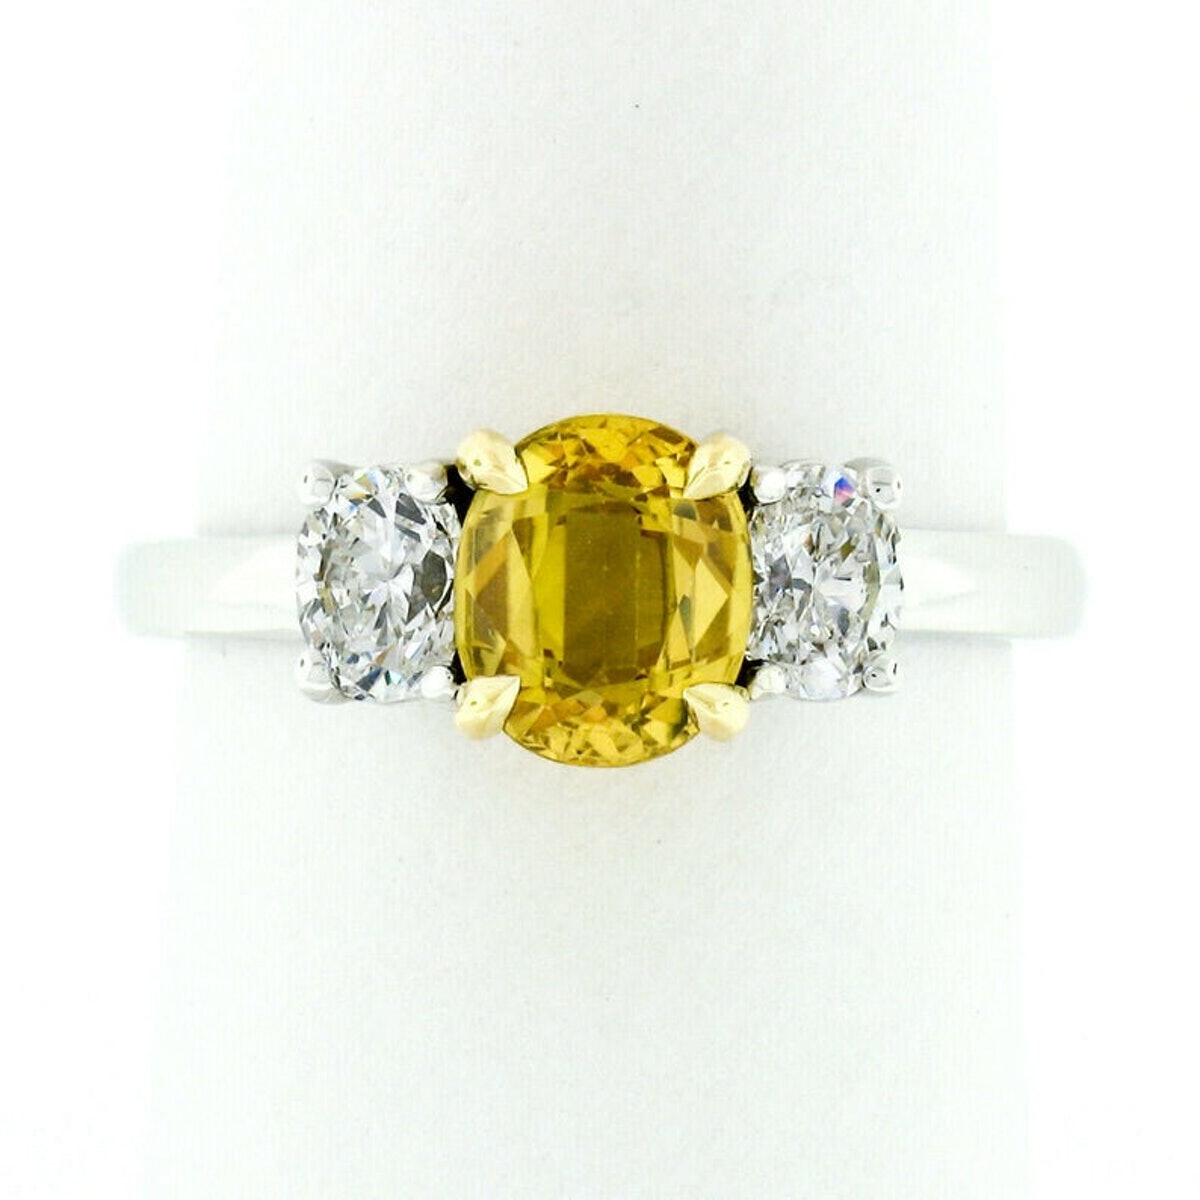 Fine 14k Two Tone Gold 1.95ctw GIA Certified Oval Yellow Sapphire & Diamond 3 Stone Engagement or Promise Ring